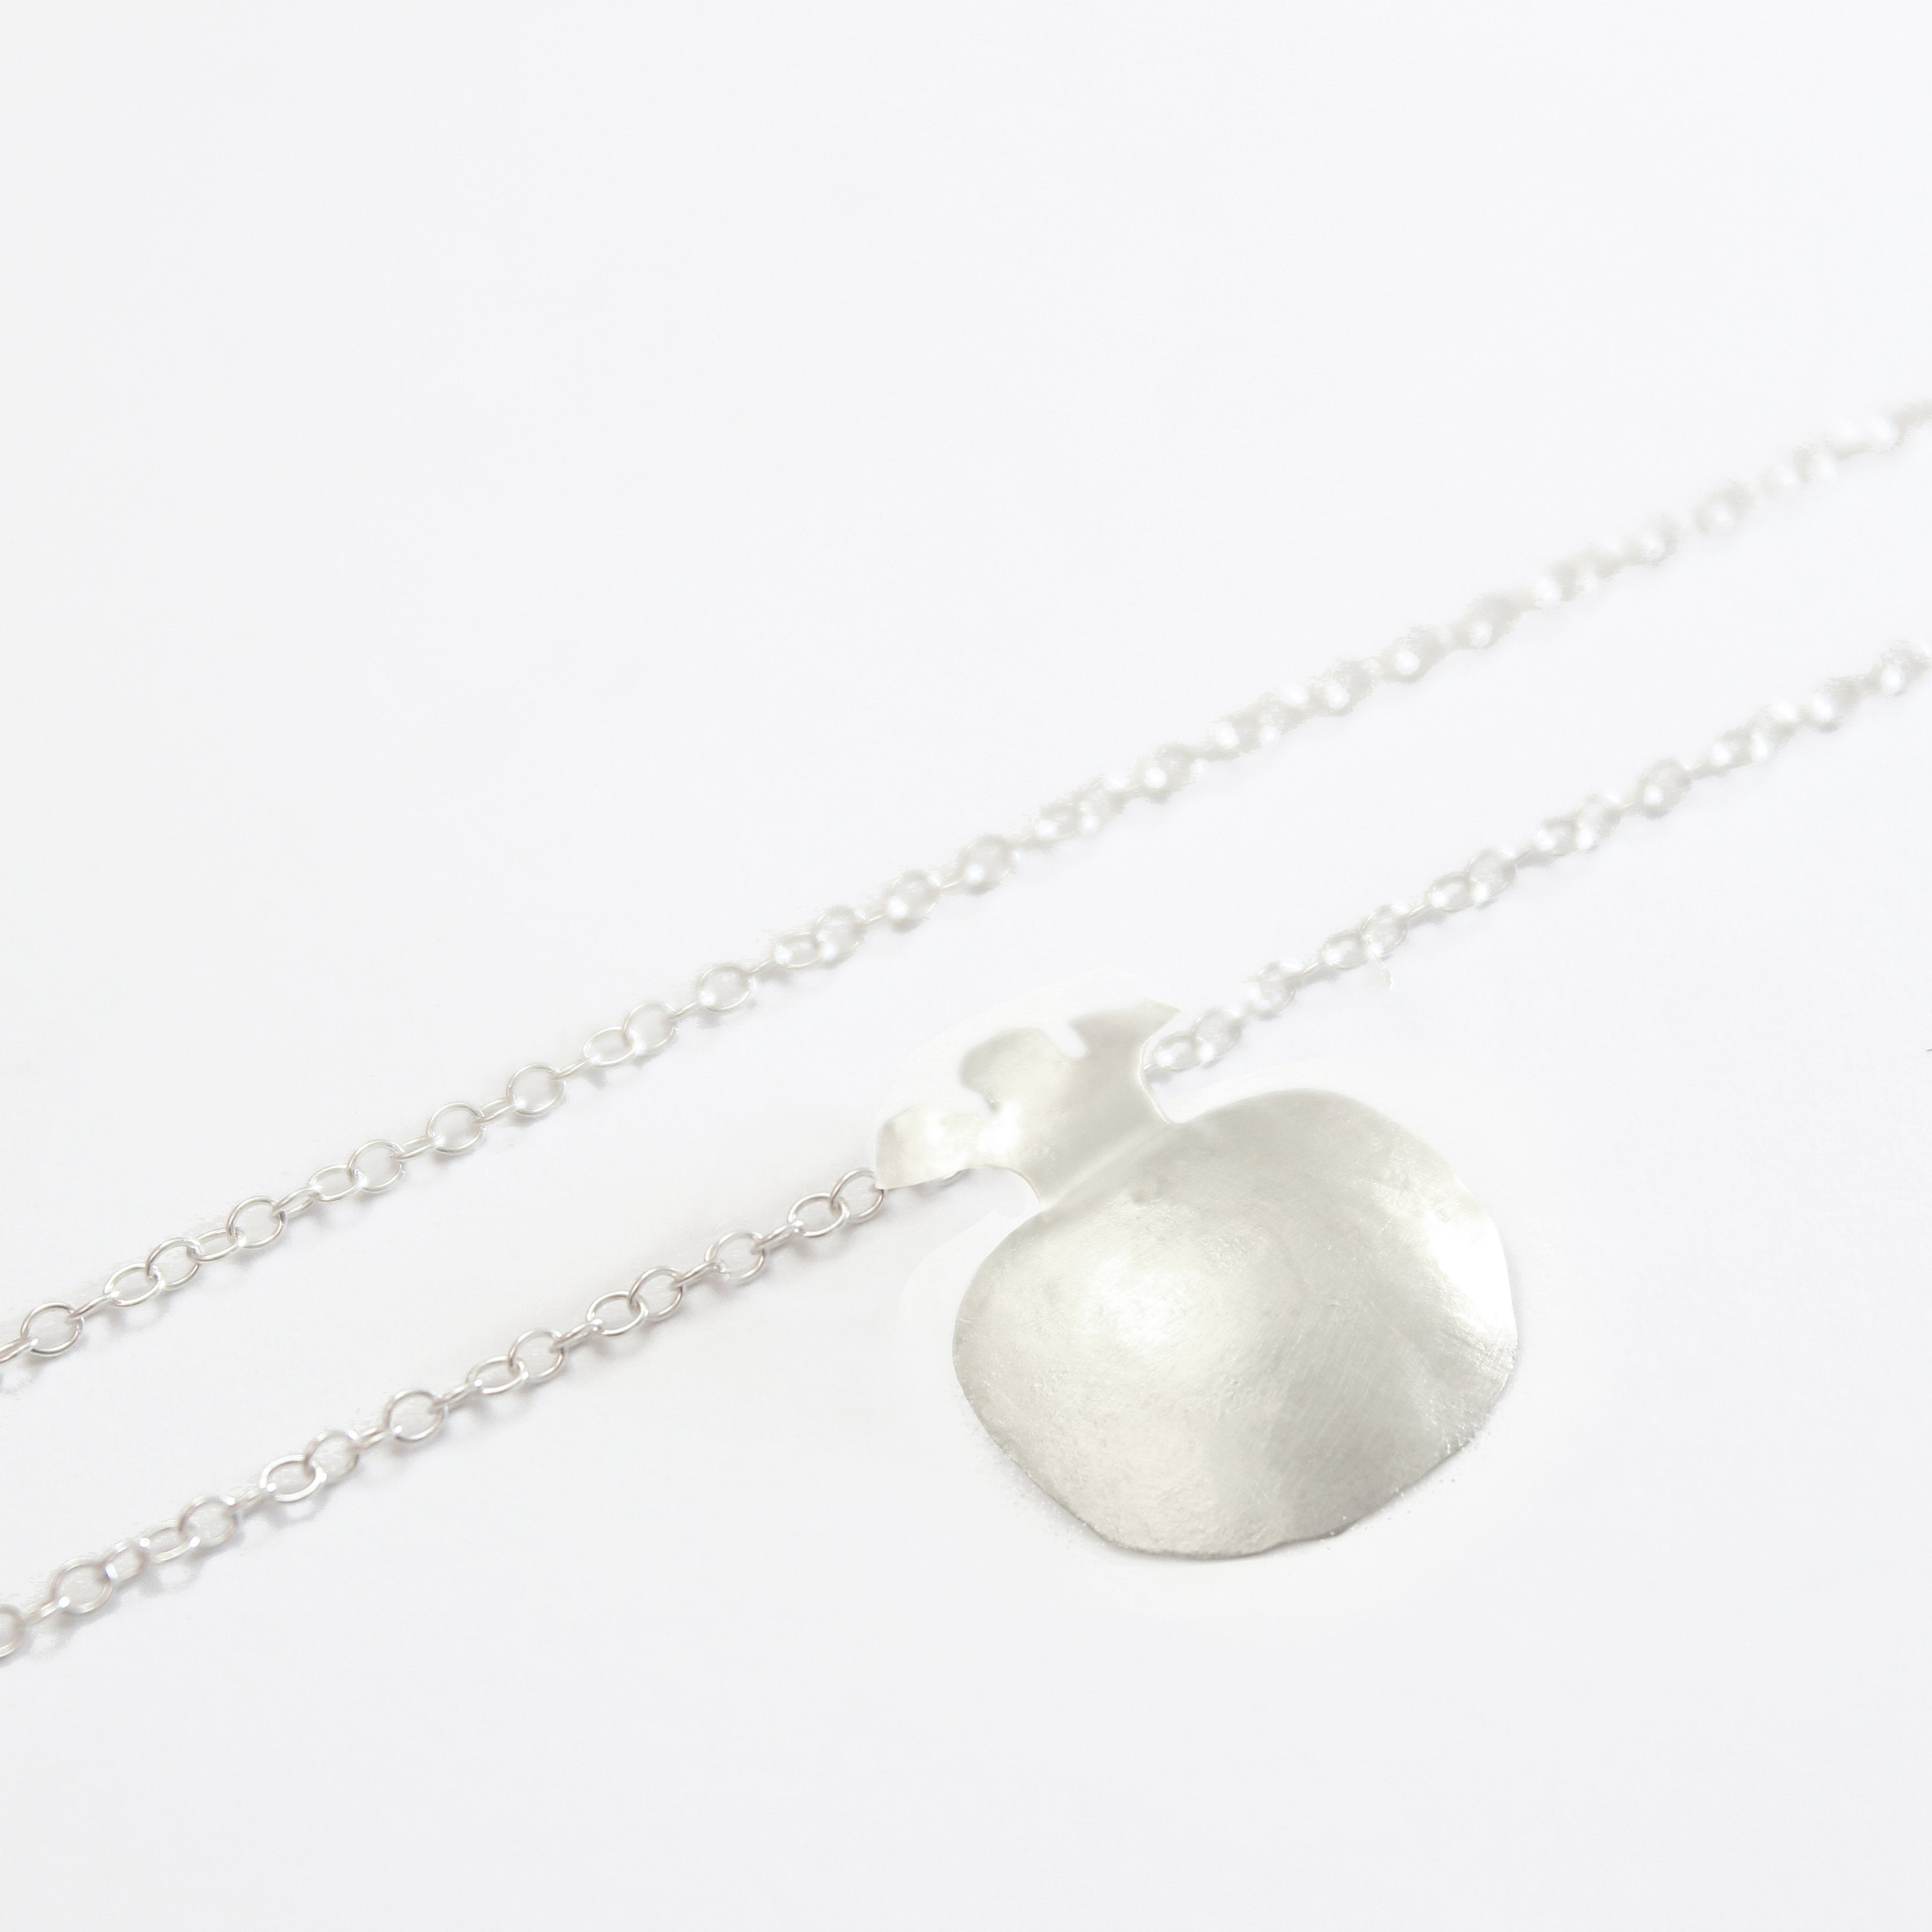 Pomegranate Silver Necklace - Shulamit Kanter Official Store